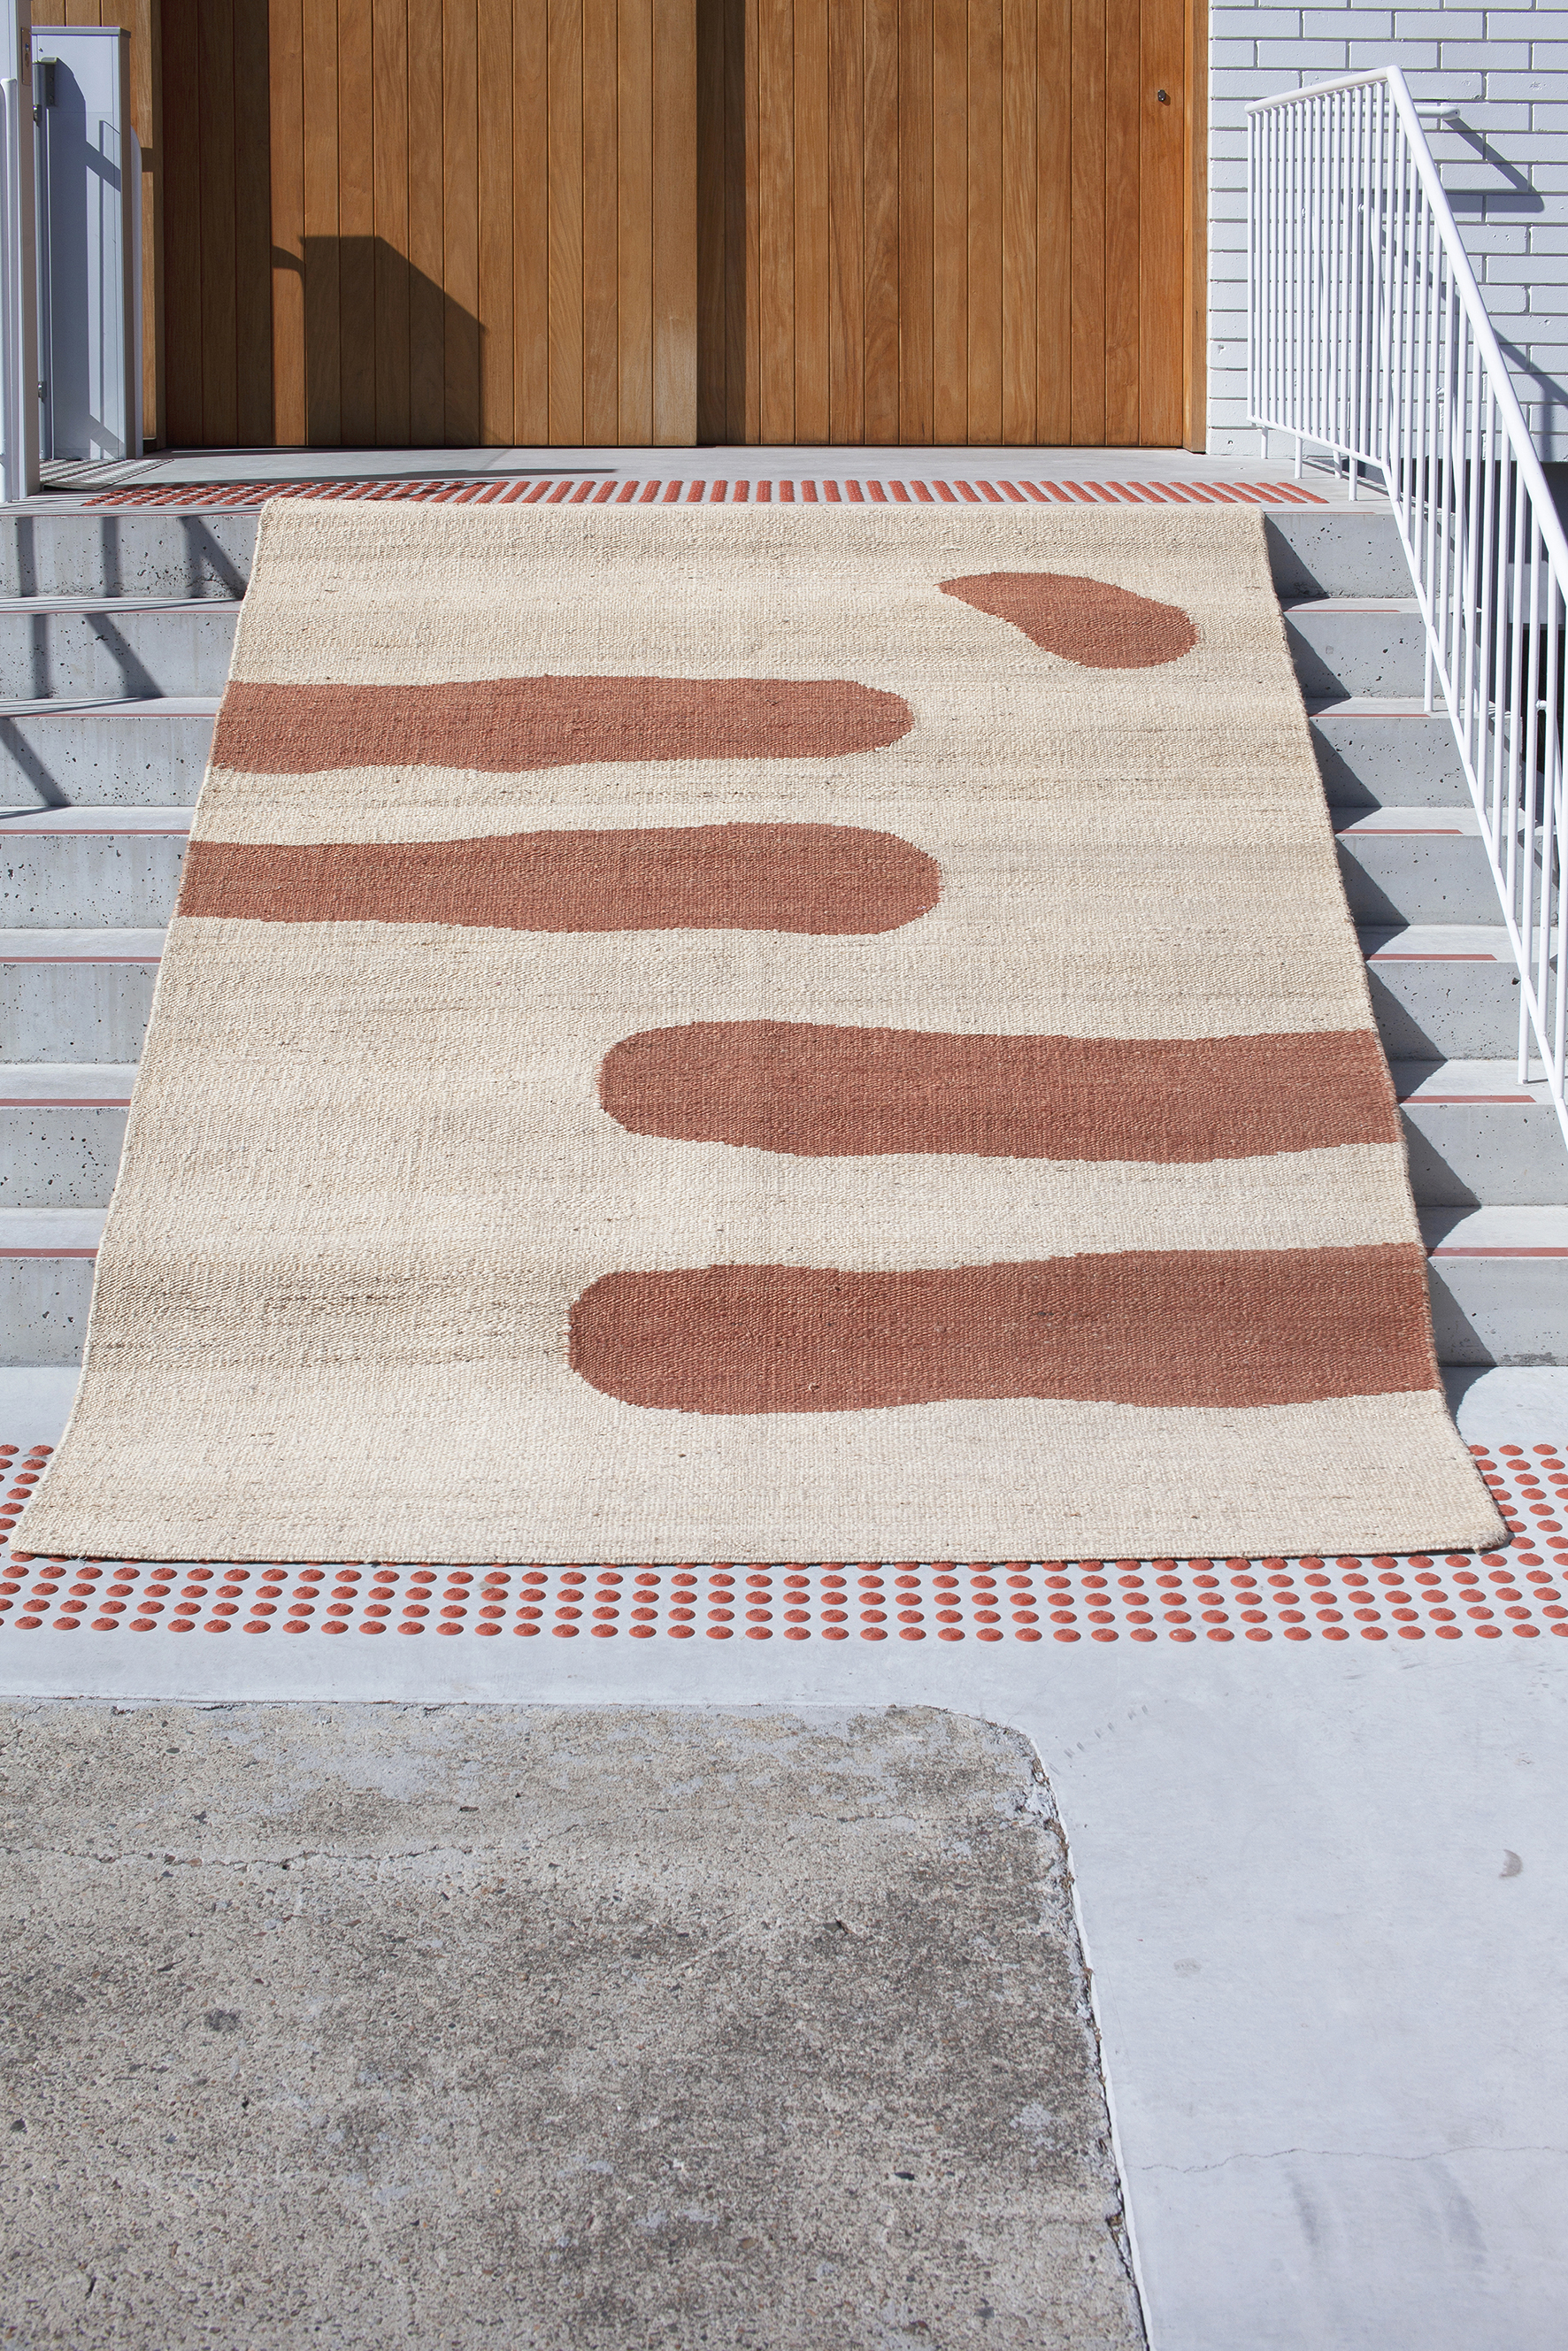 Rug • Woven Reed Natural / Clay Jute